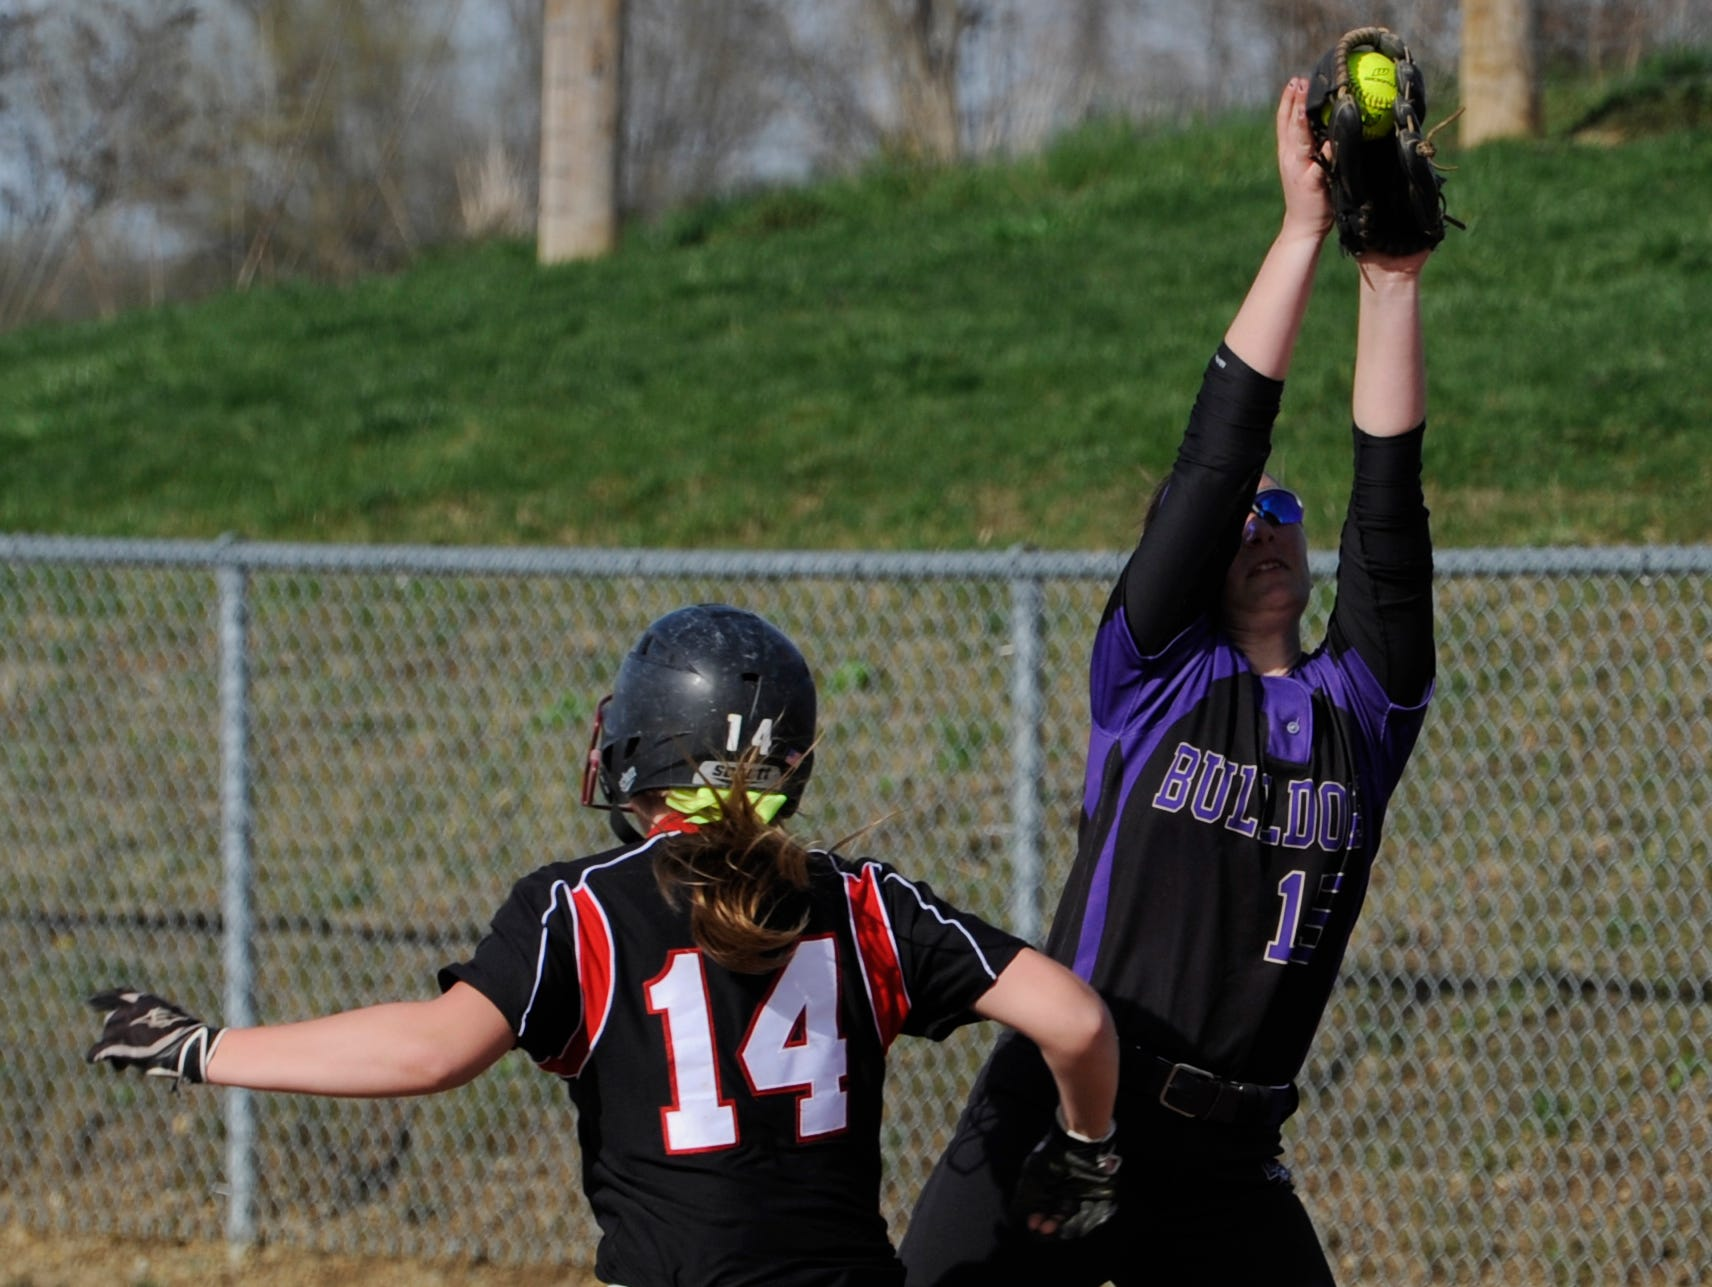 Liberty Union's Kailey Bolinger reaches first base as Bloom-Carroll's Hunter Gladman catches the ball at Bloom-Carroll High School. The Lions defeated the Bulldogs 1-0.